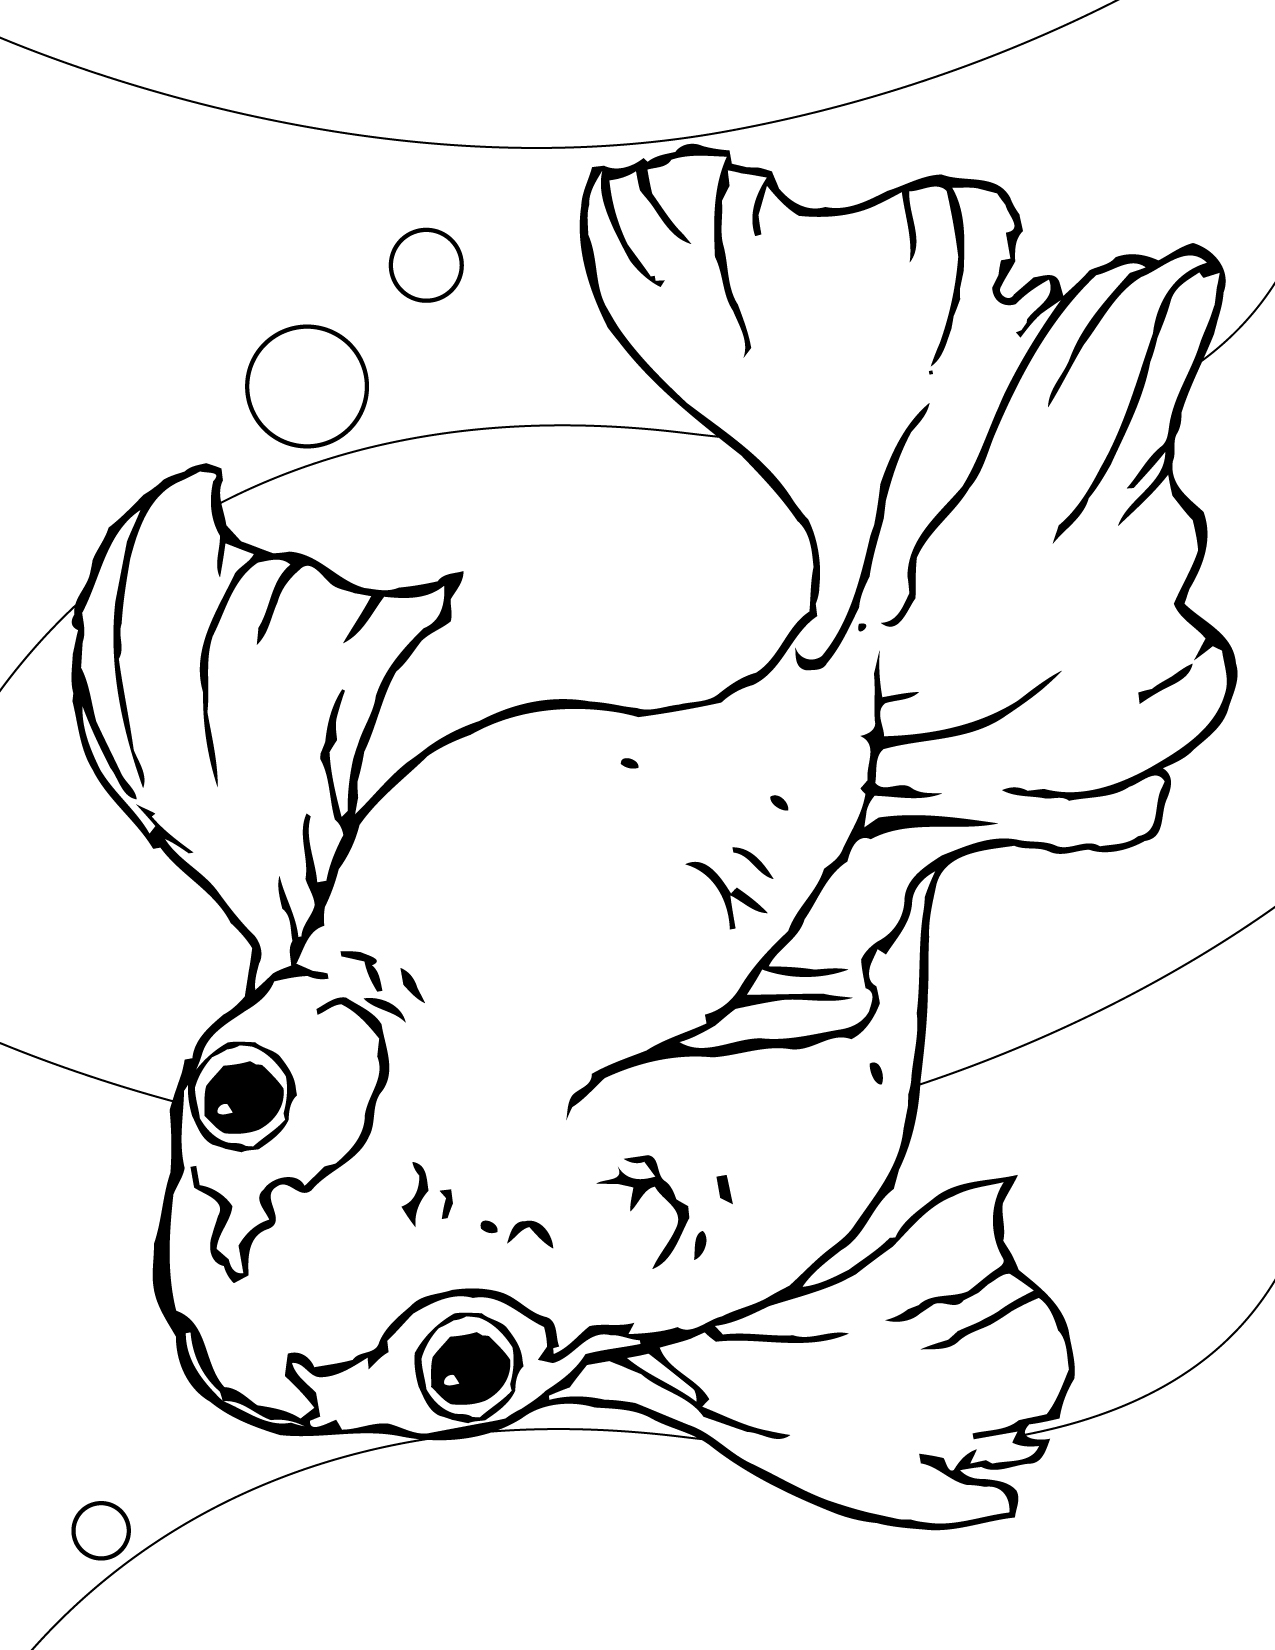 fish coloring pages to print - photo#31